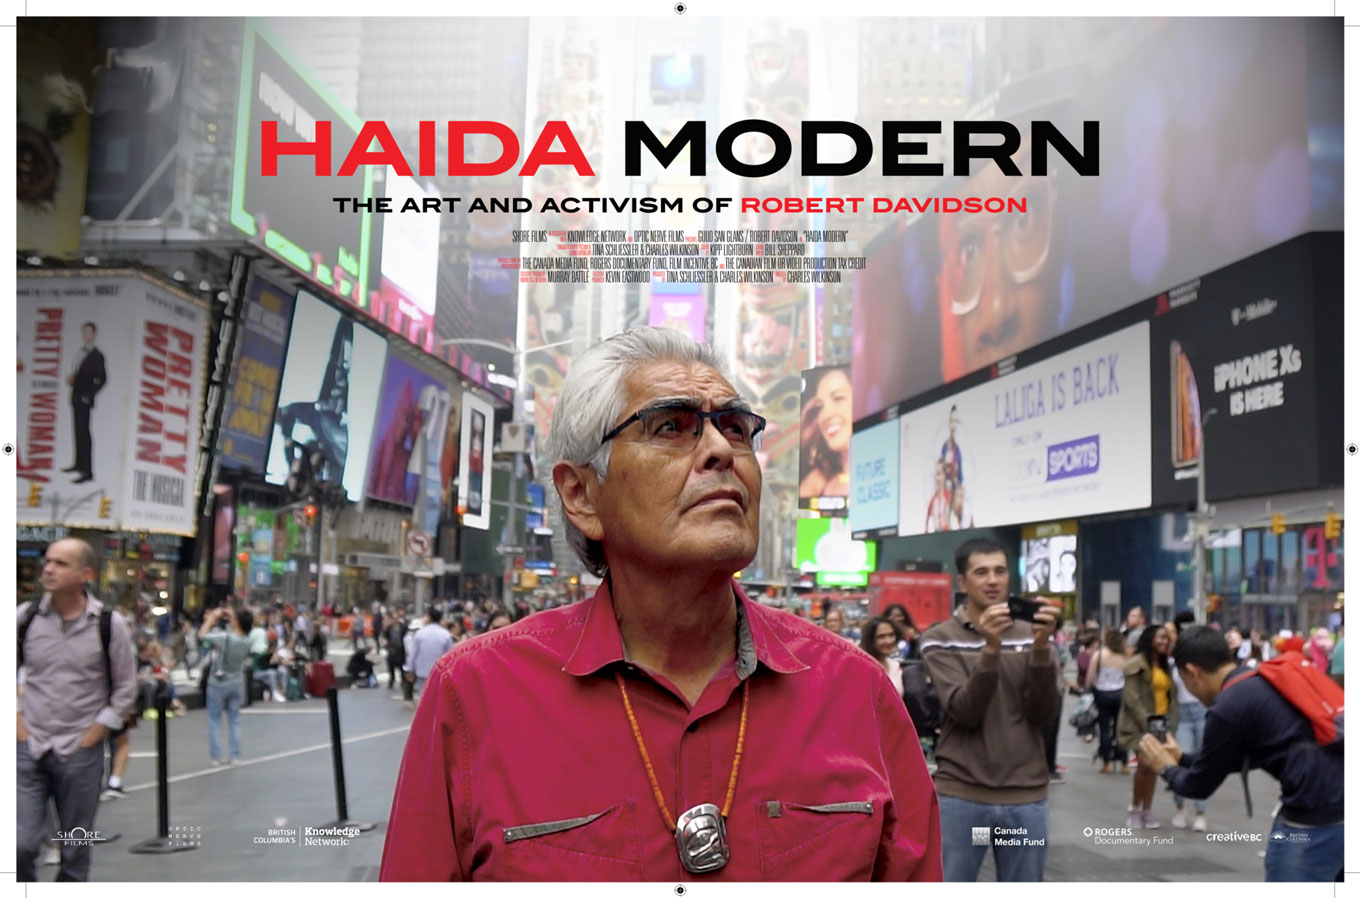 Haida Modern - The Art of Activism by Robert Davidson